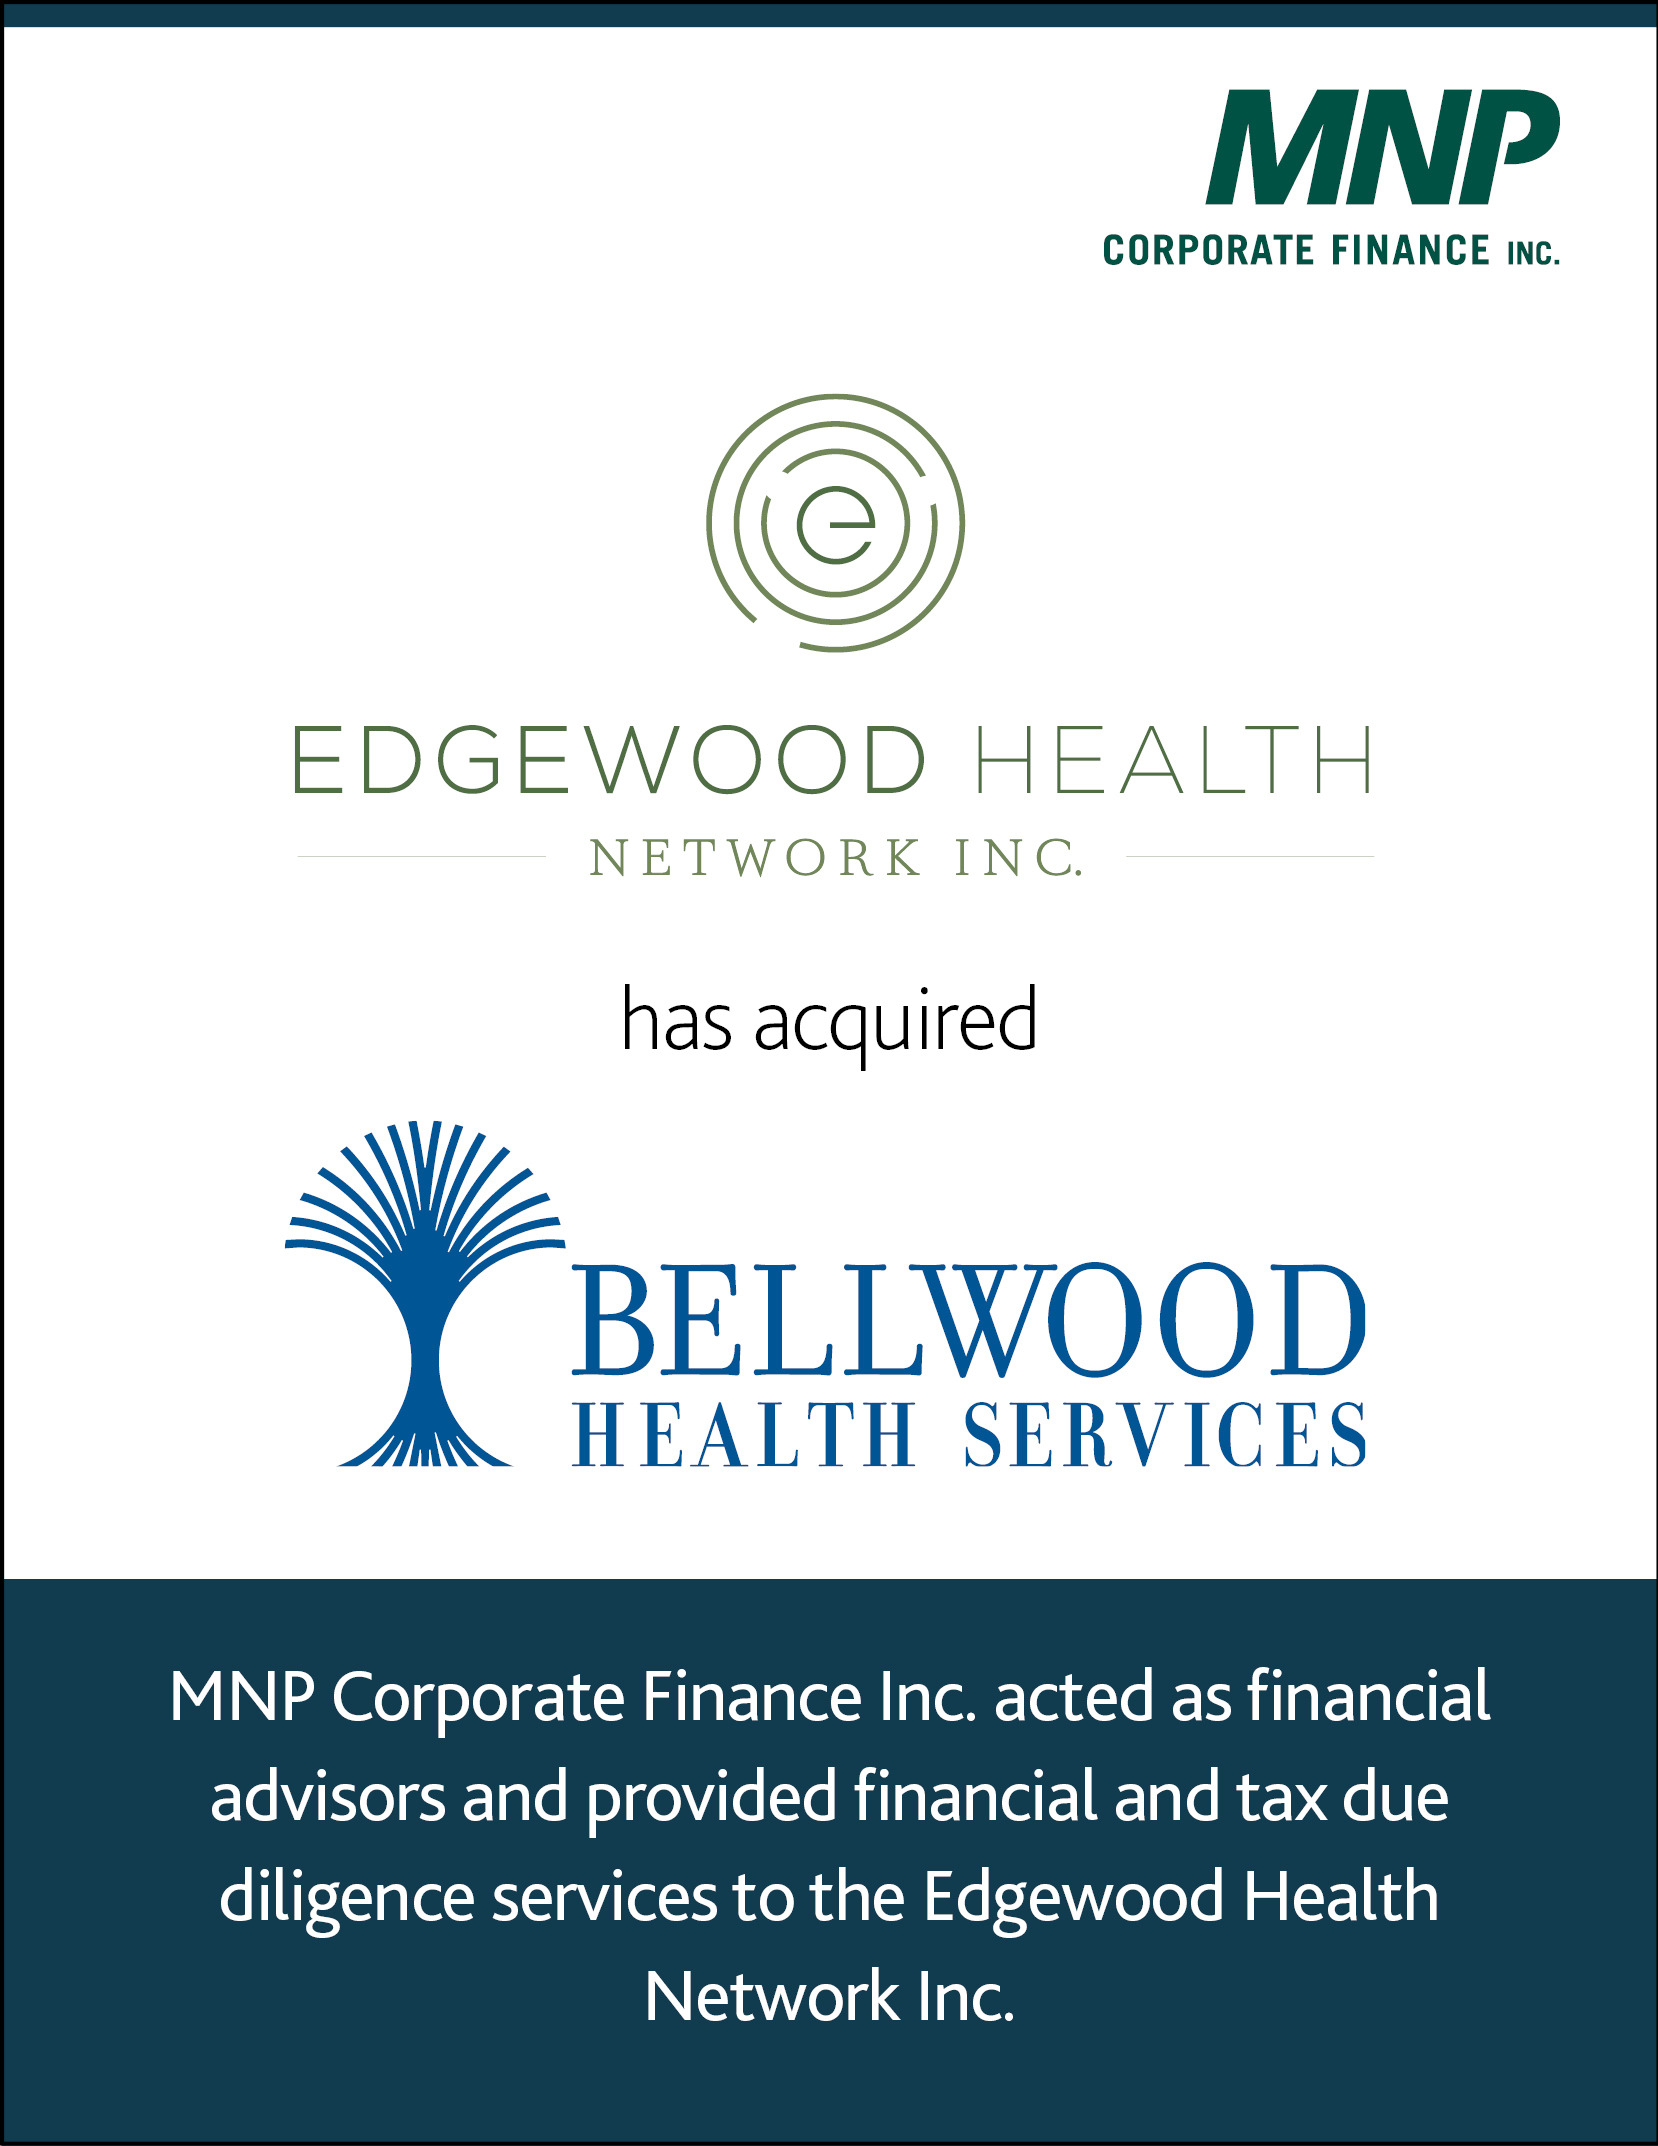 Edgewood Health Network INC has acquired Bellwood Health Services